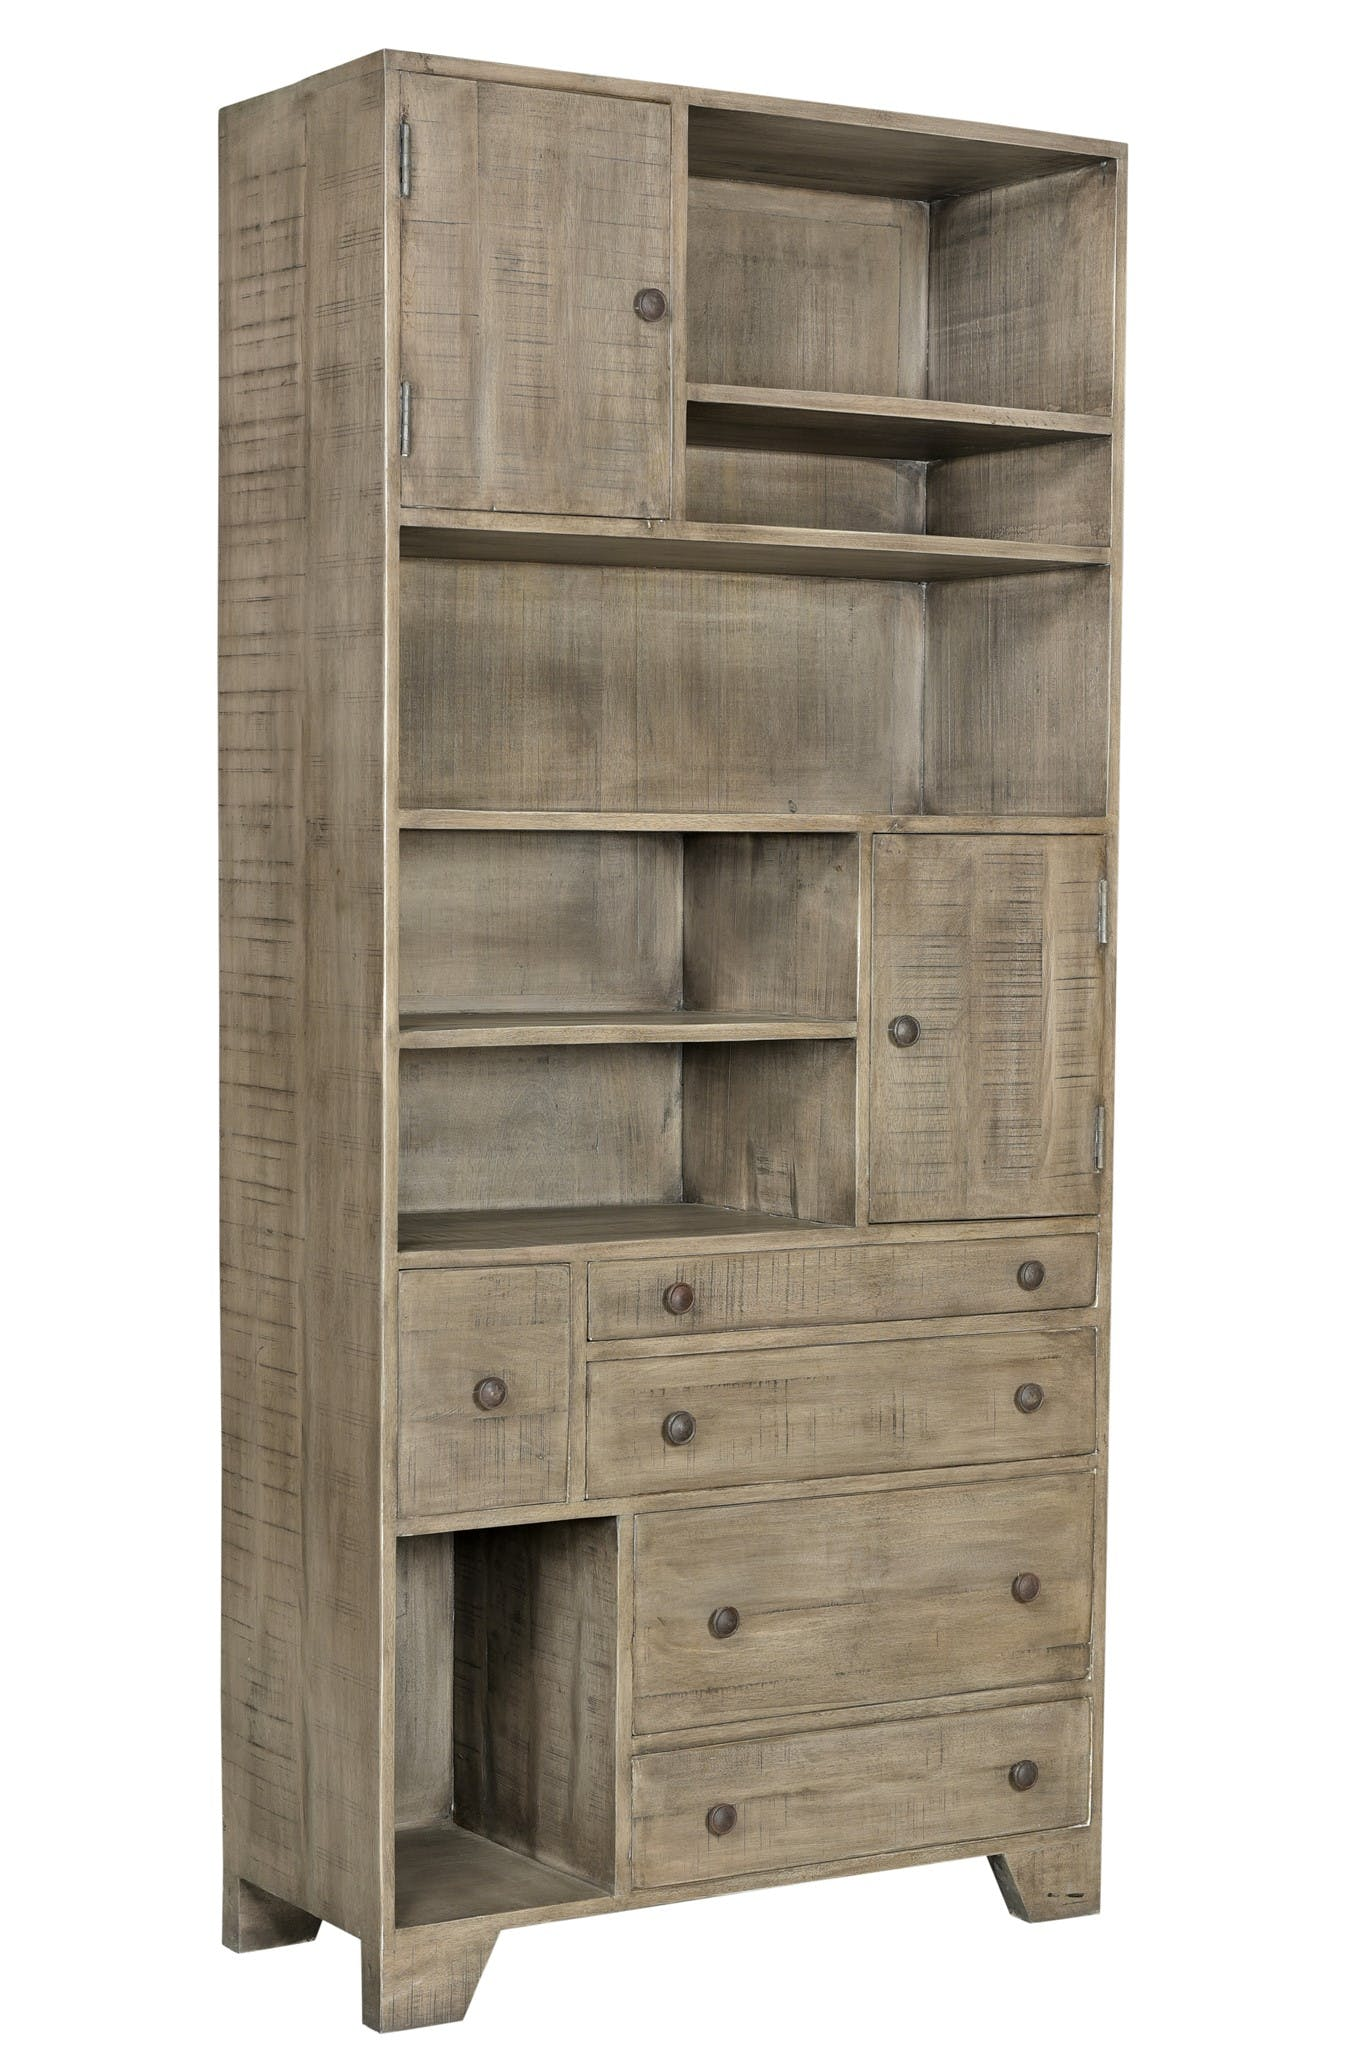 Crestview Home Office Bengal Manor Distressed Grey Bookcase